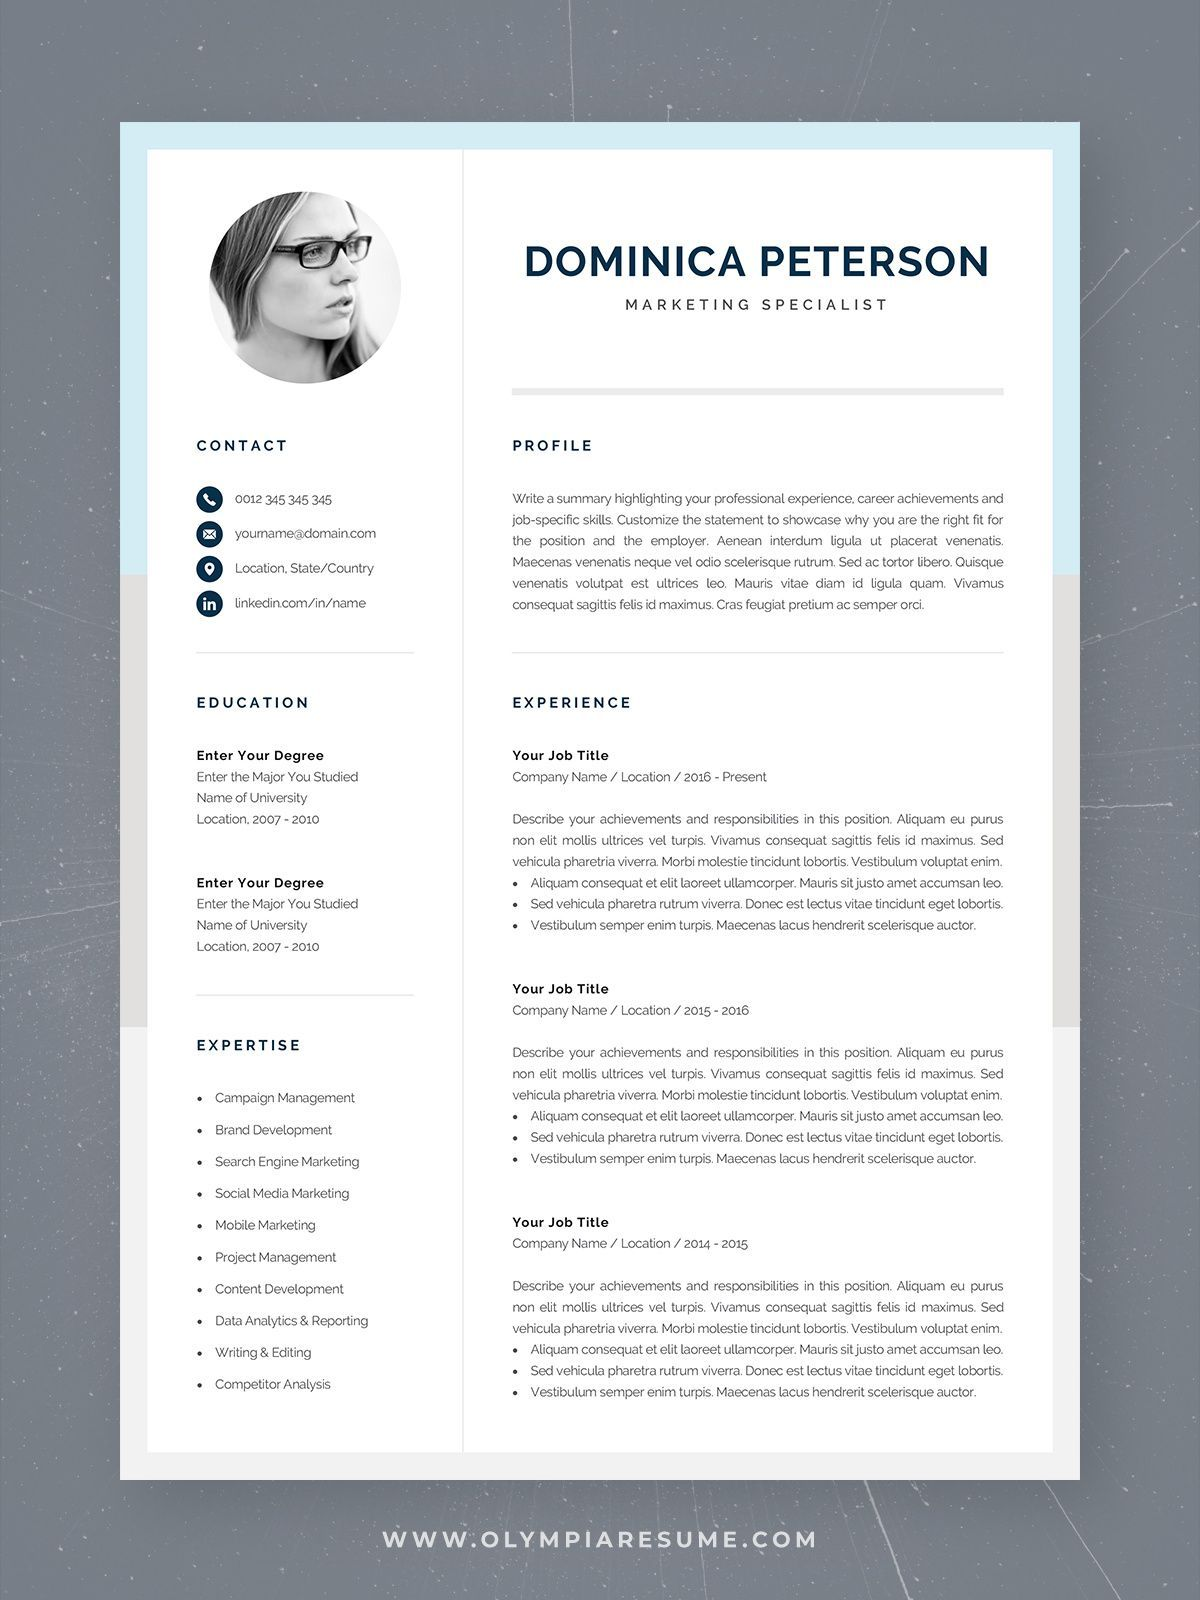 Modern Resume Template Creative Cv With Photo 1 2 Page Etsy Modern Cv Template Cv Template Creative Resume Templates